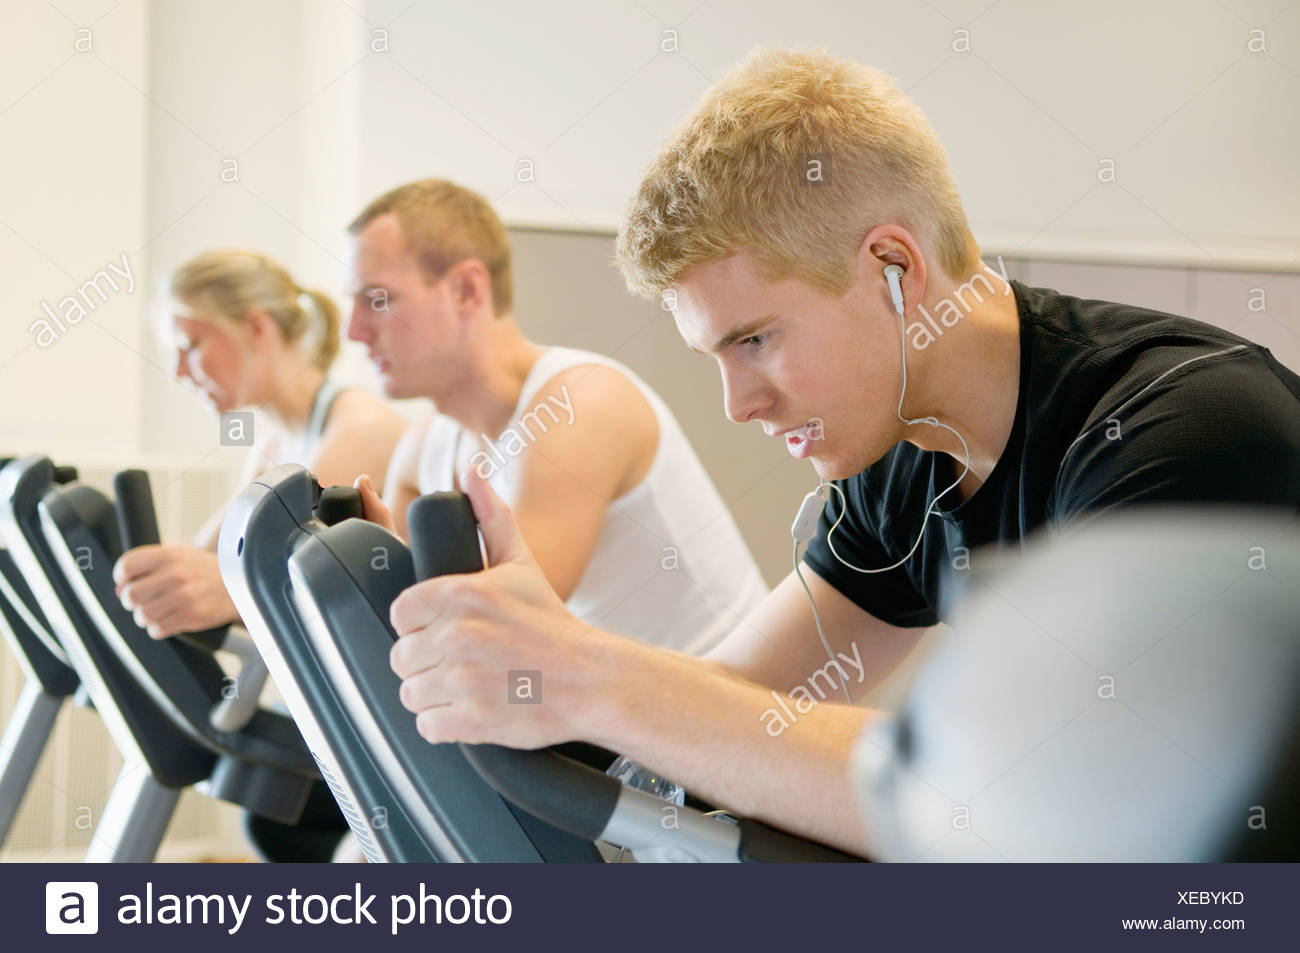 Three people working out - Stock Image